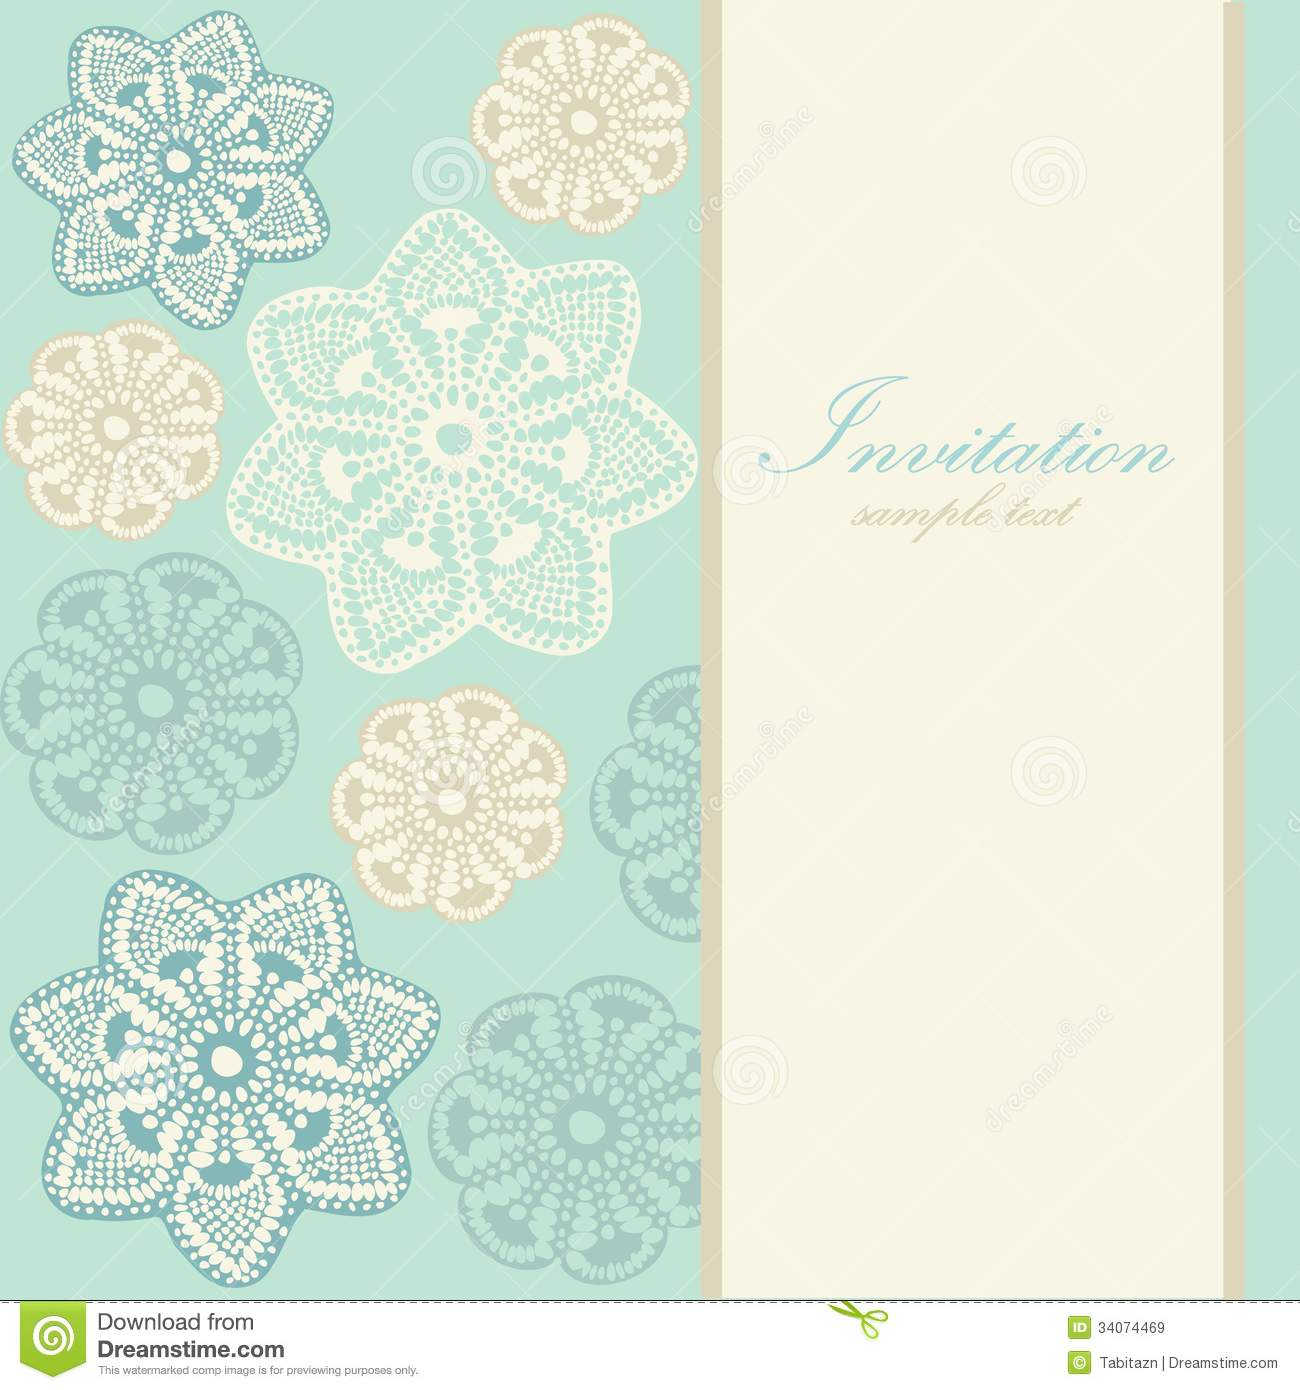 Wedding Birthday Card Or Invitation With Abstract Lace